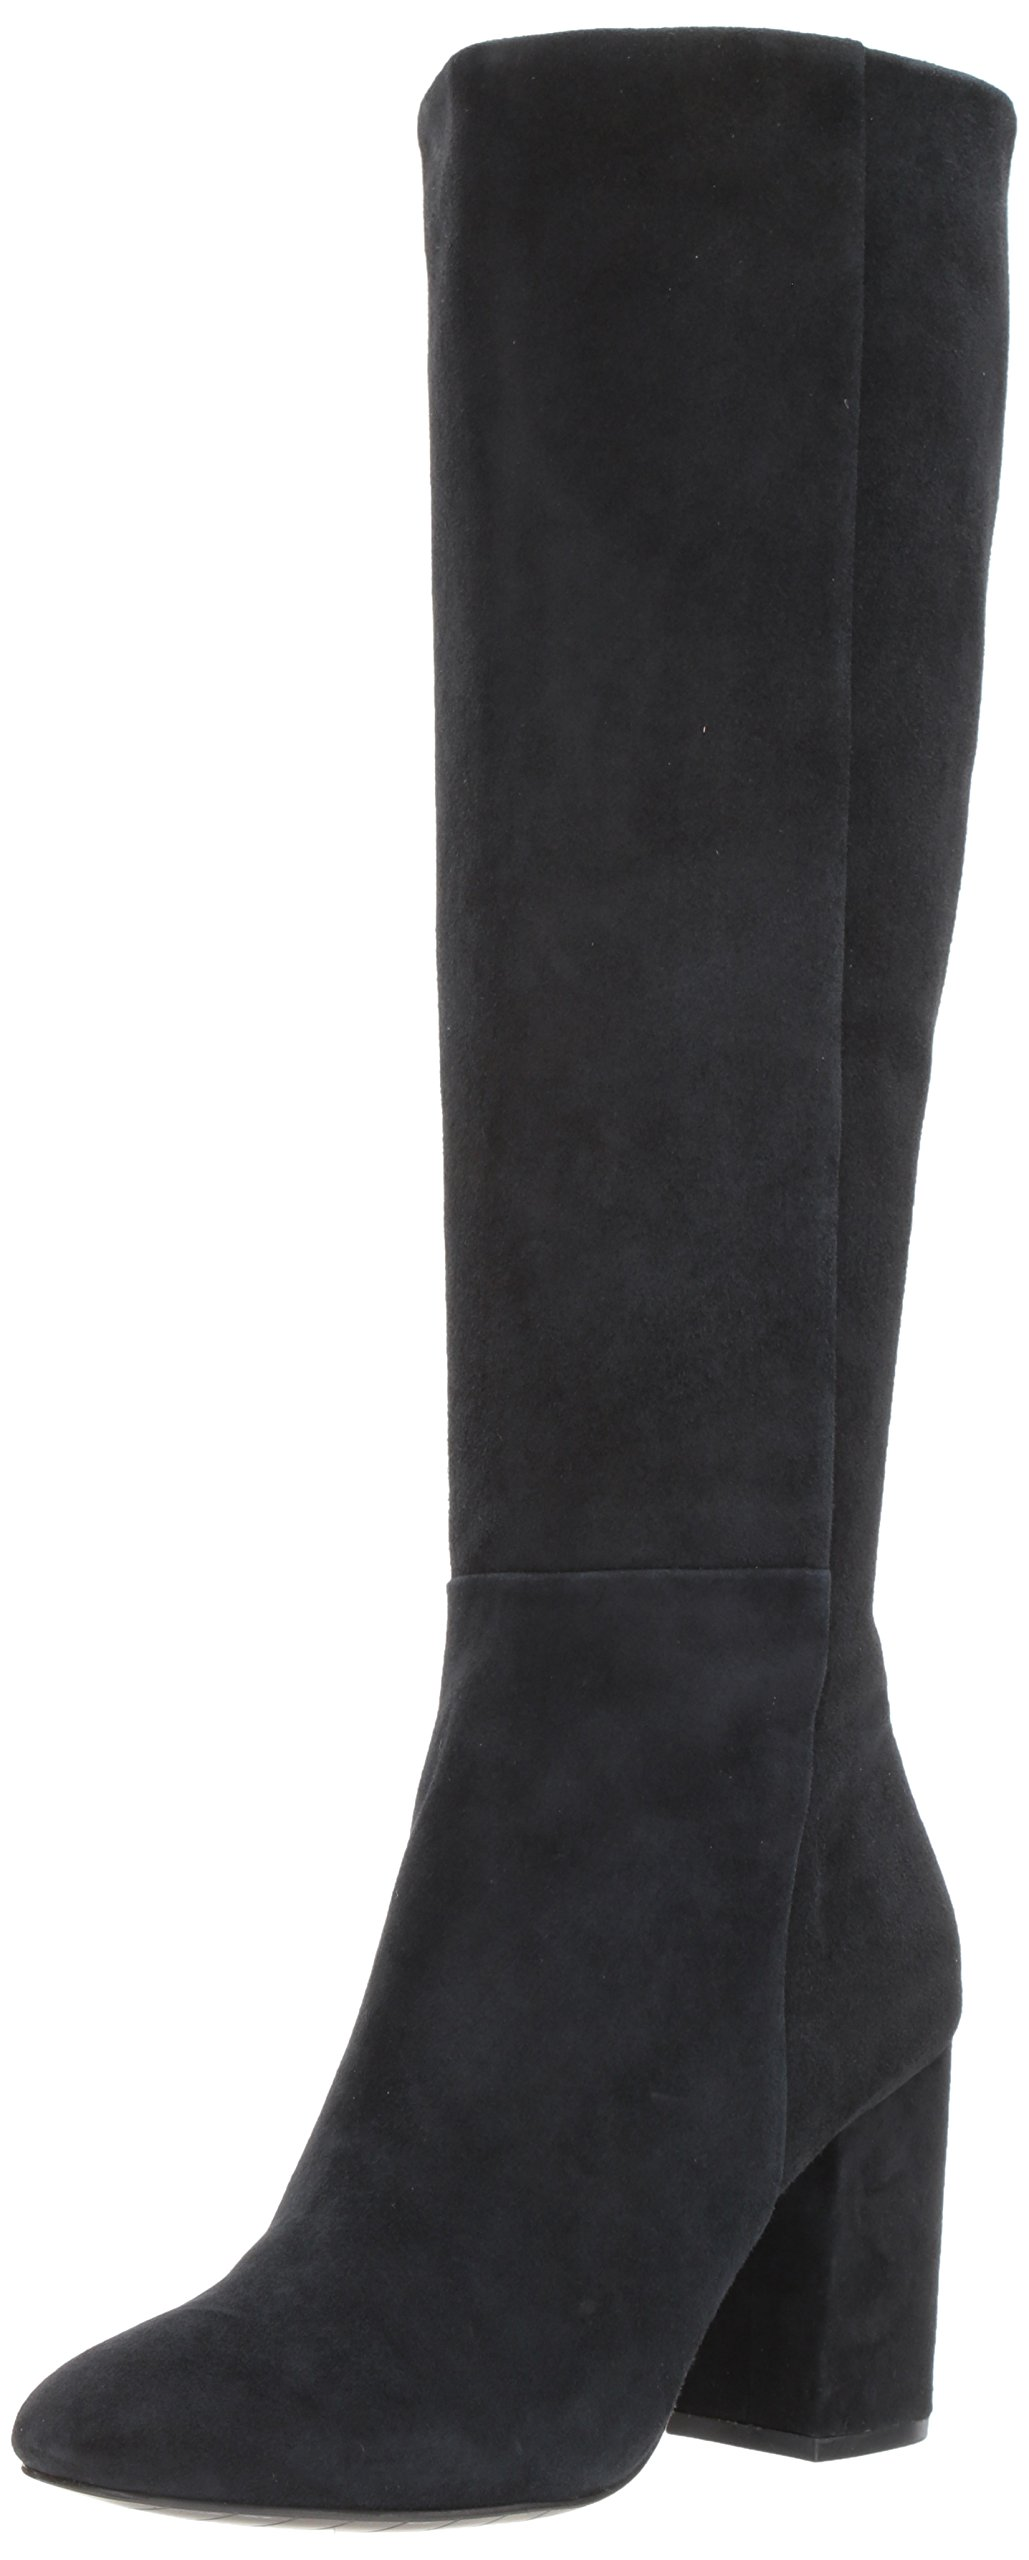 Kenneth Cole New York Women's Clarissa Knee High Tall Stacked Heel Engineer Boot, Black, 10 M US